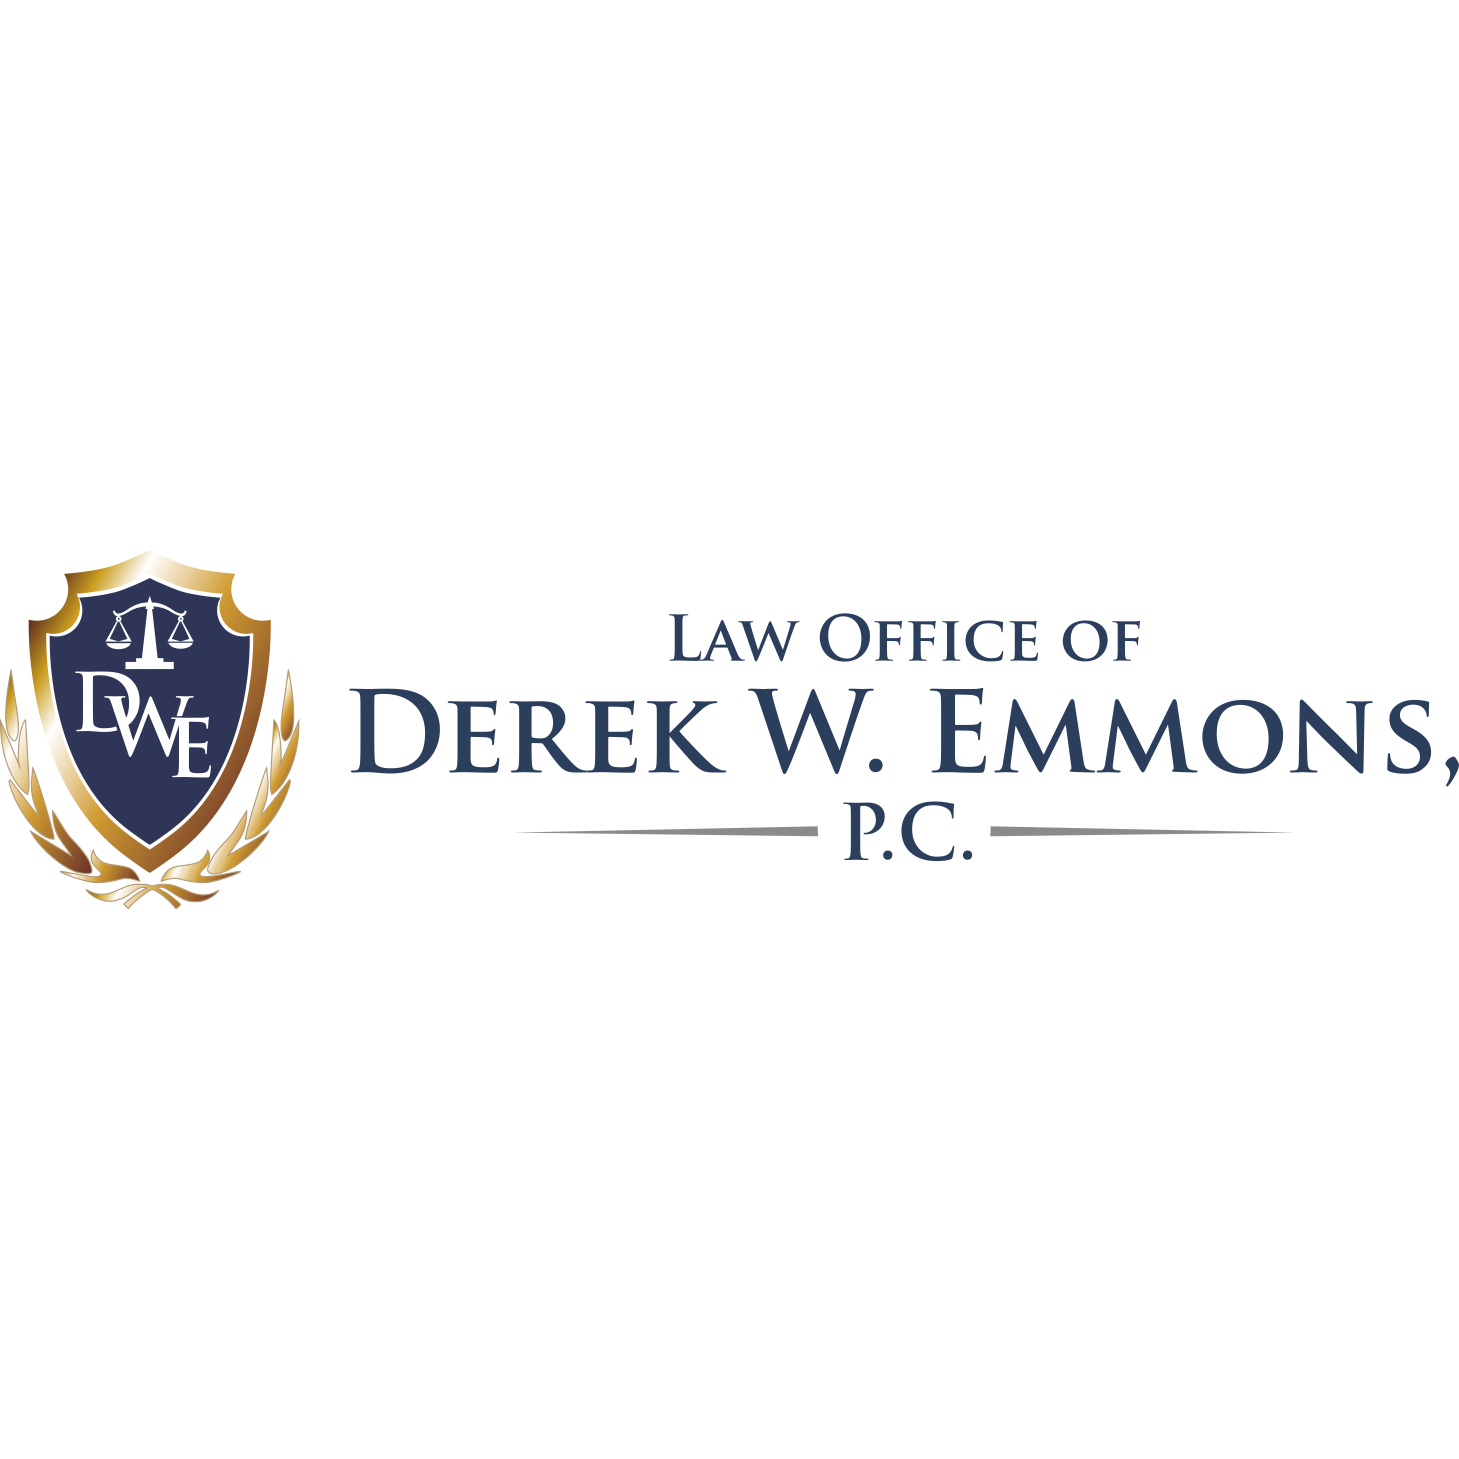 Law Office of Derek Emmons, P.C.